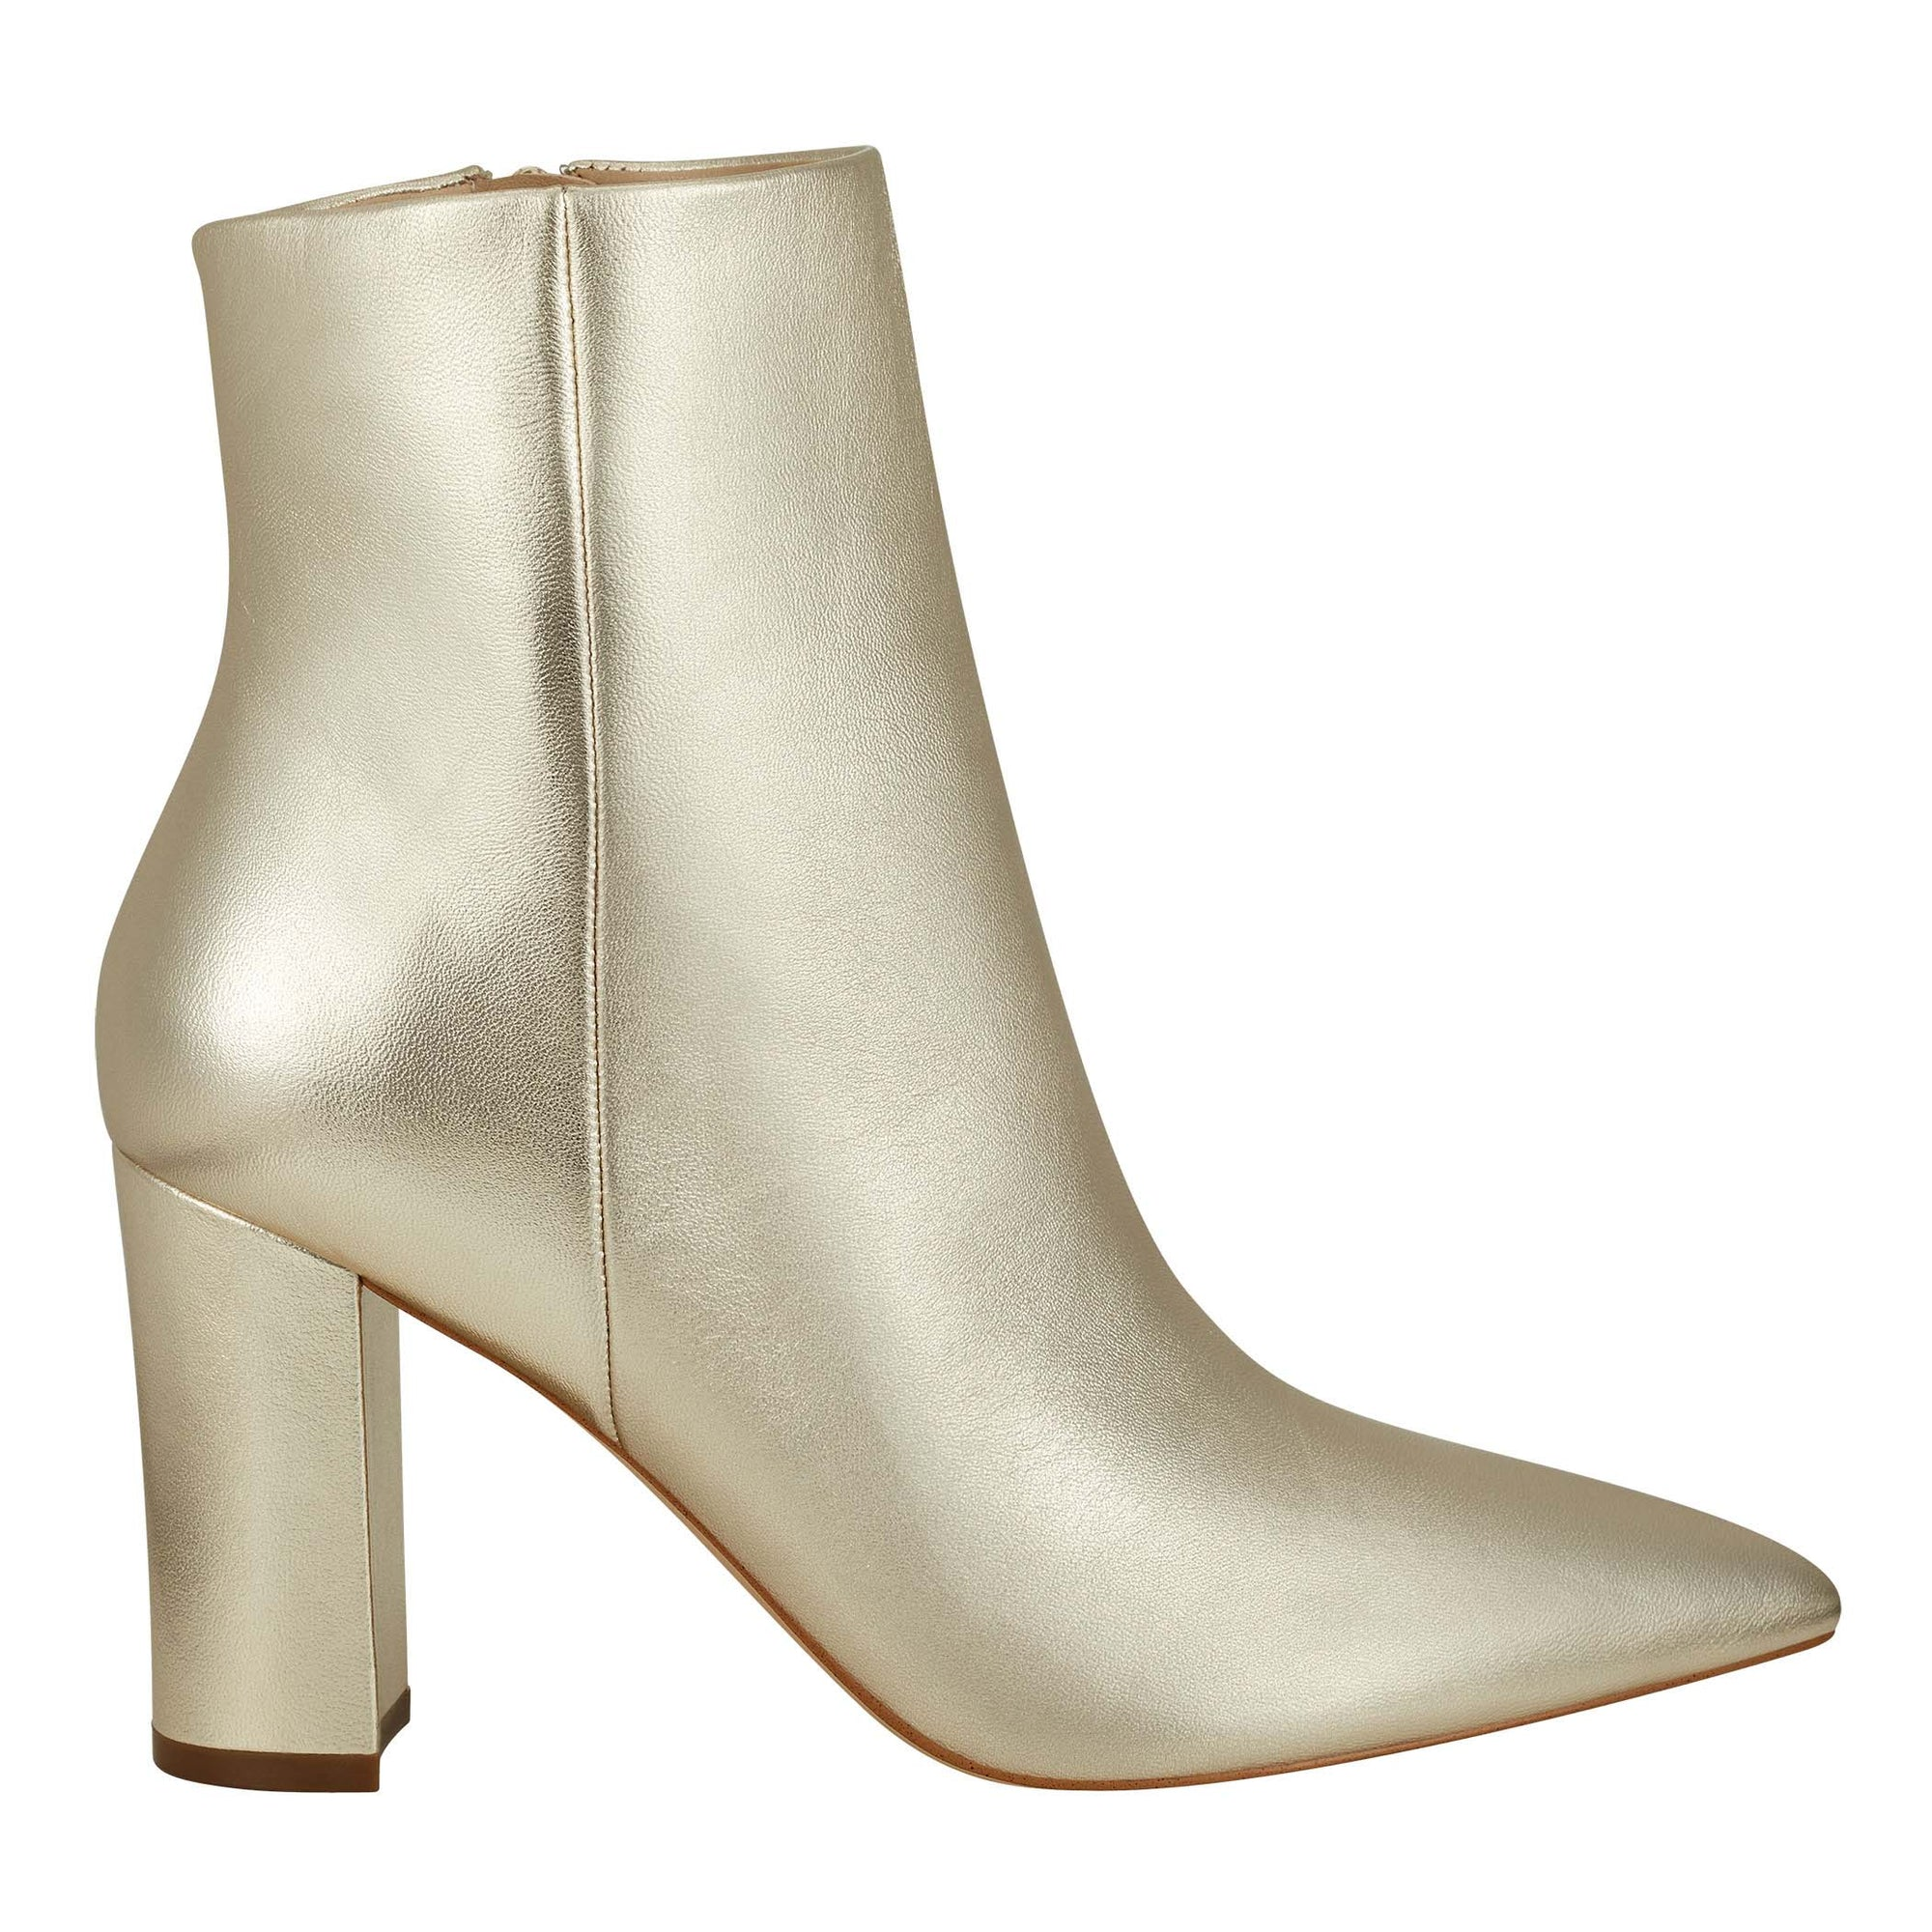 ulani-heeled-bootie-in-gold-leather